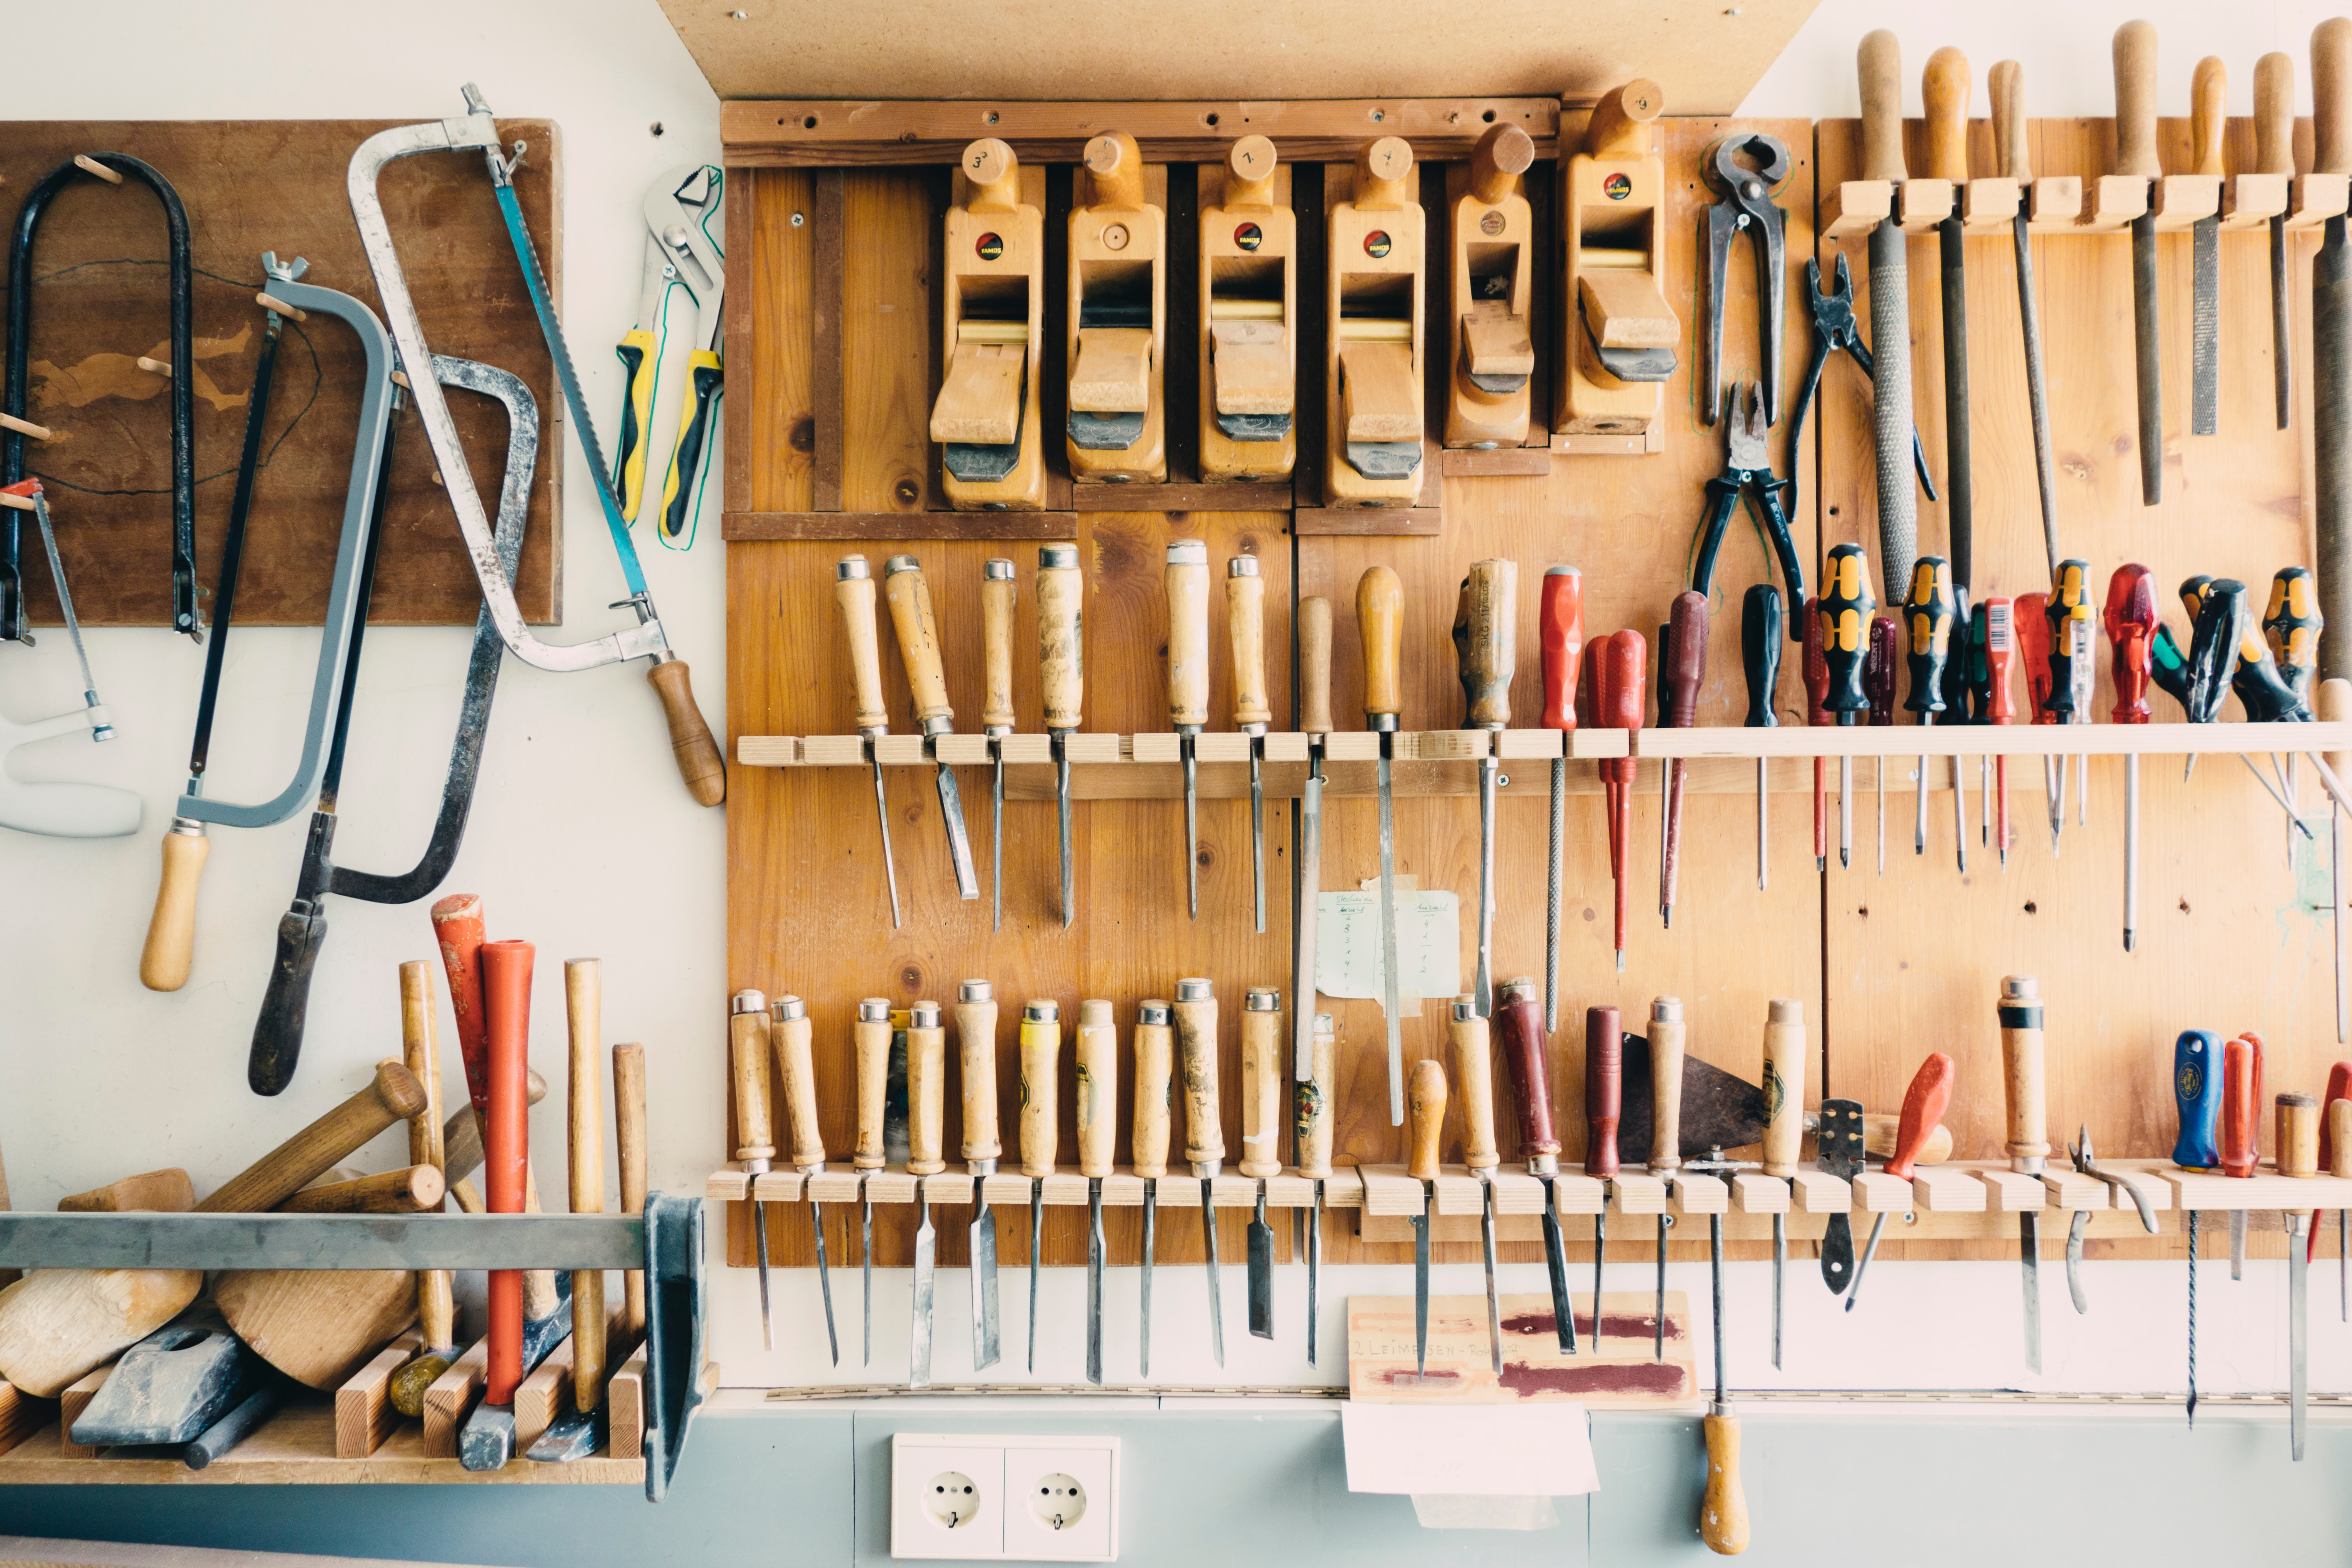 carpenter's workshop with tools hanging on the wall